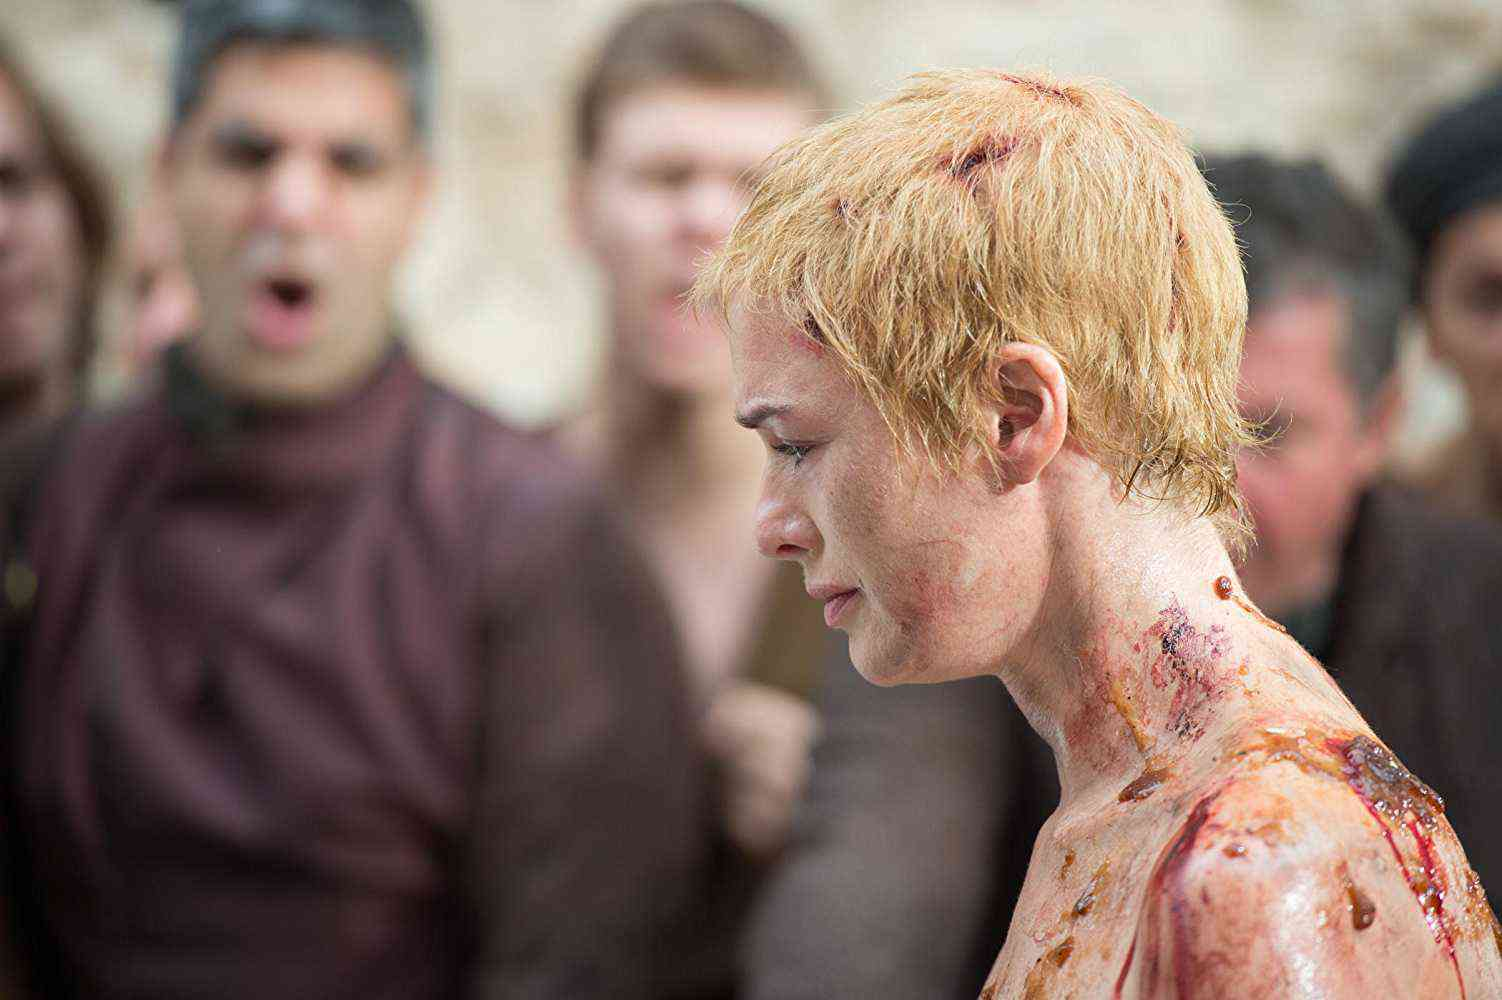 Cersei Lannister's (Lena Headey) Walk of Shame in Game of Thrones. Courtesy HBO.